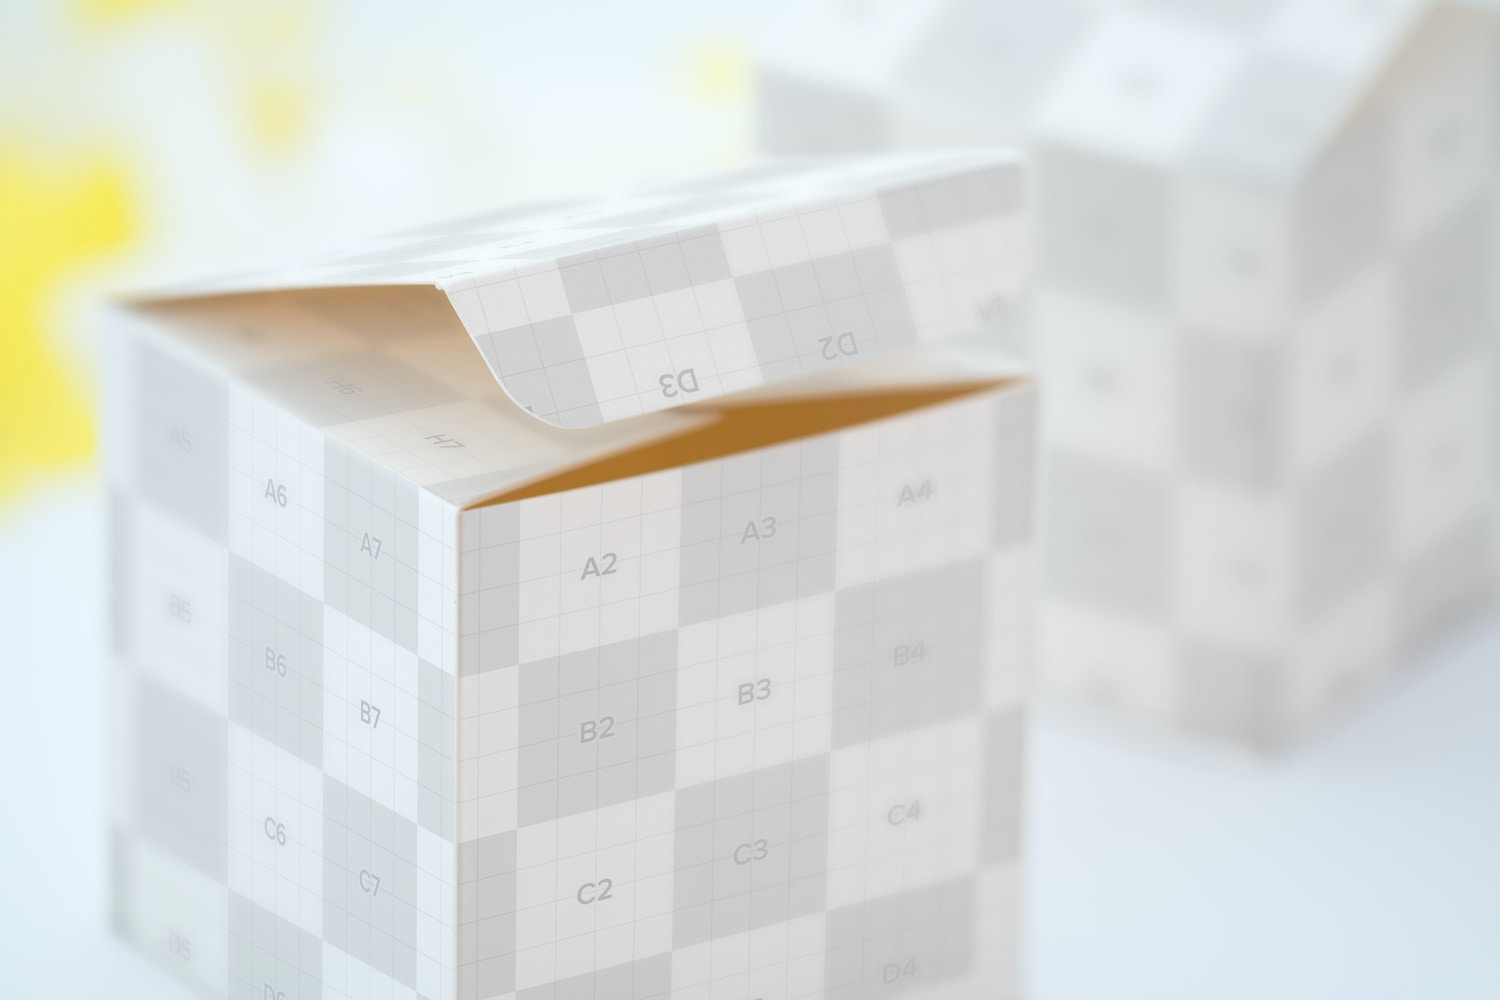 Soft Paper Cube Gift Box Mockup 02 by Ktyellow  on Original Mockups